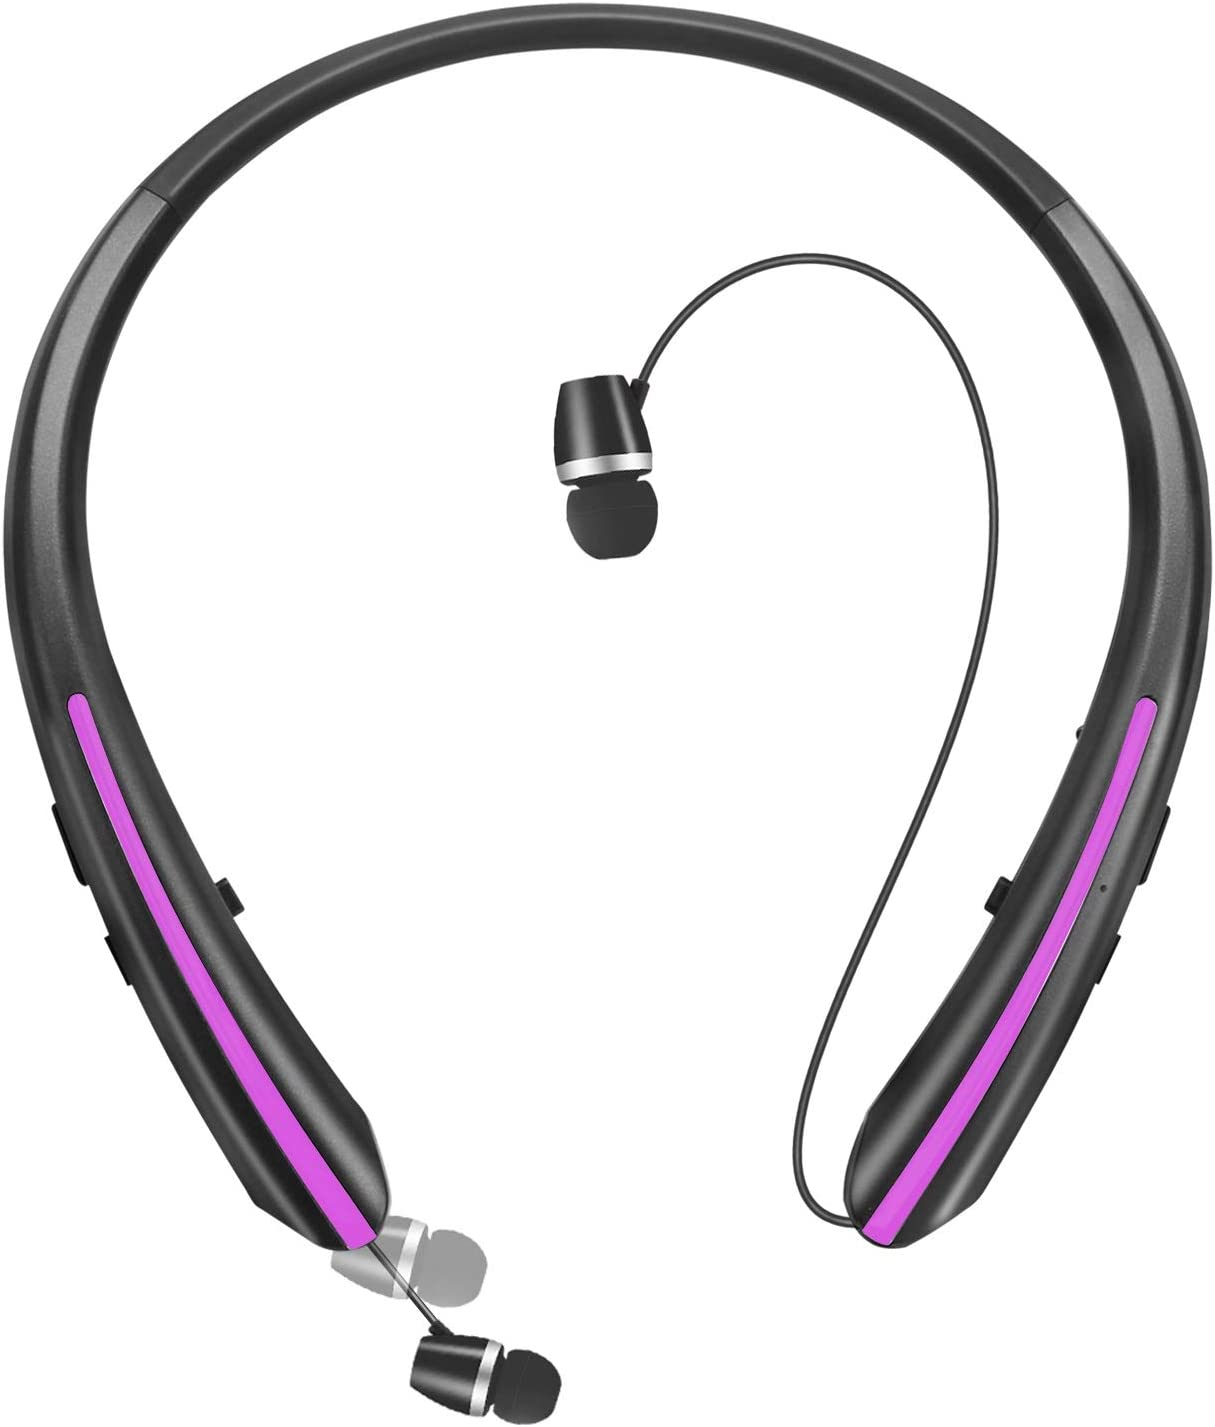 Bluetooth Headphones, Retractable Wireless Neckband Earbuds Earphone Stereo Headsets with Microphone(20 Hours of Music)